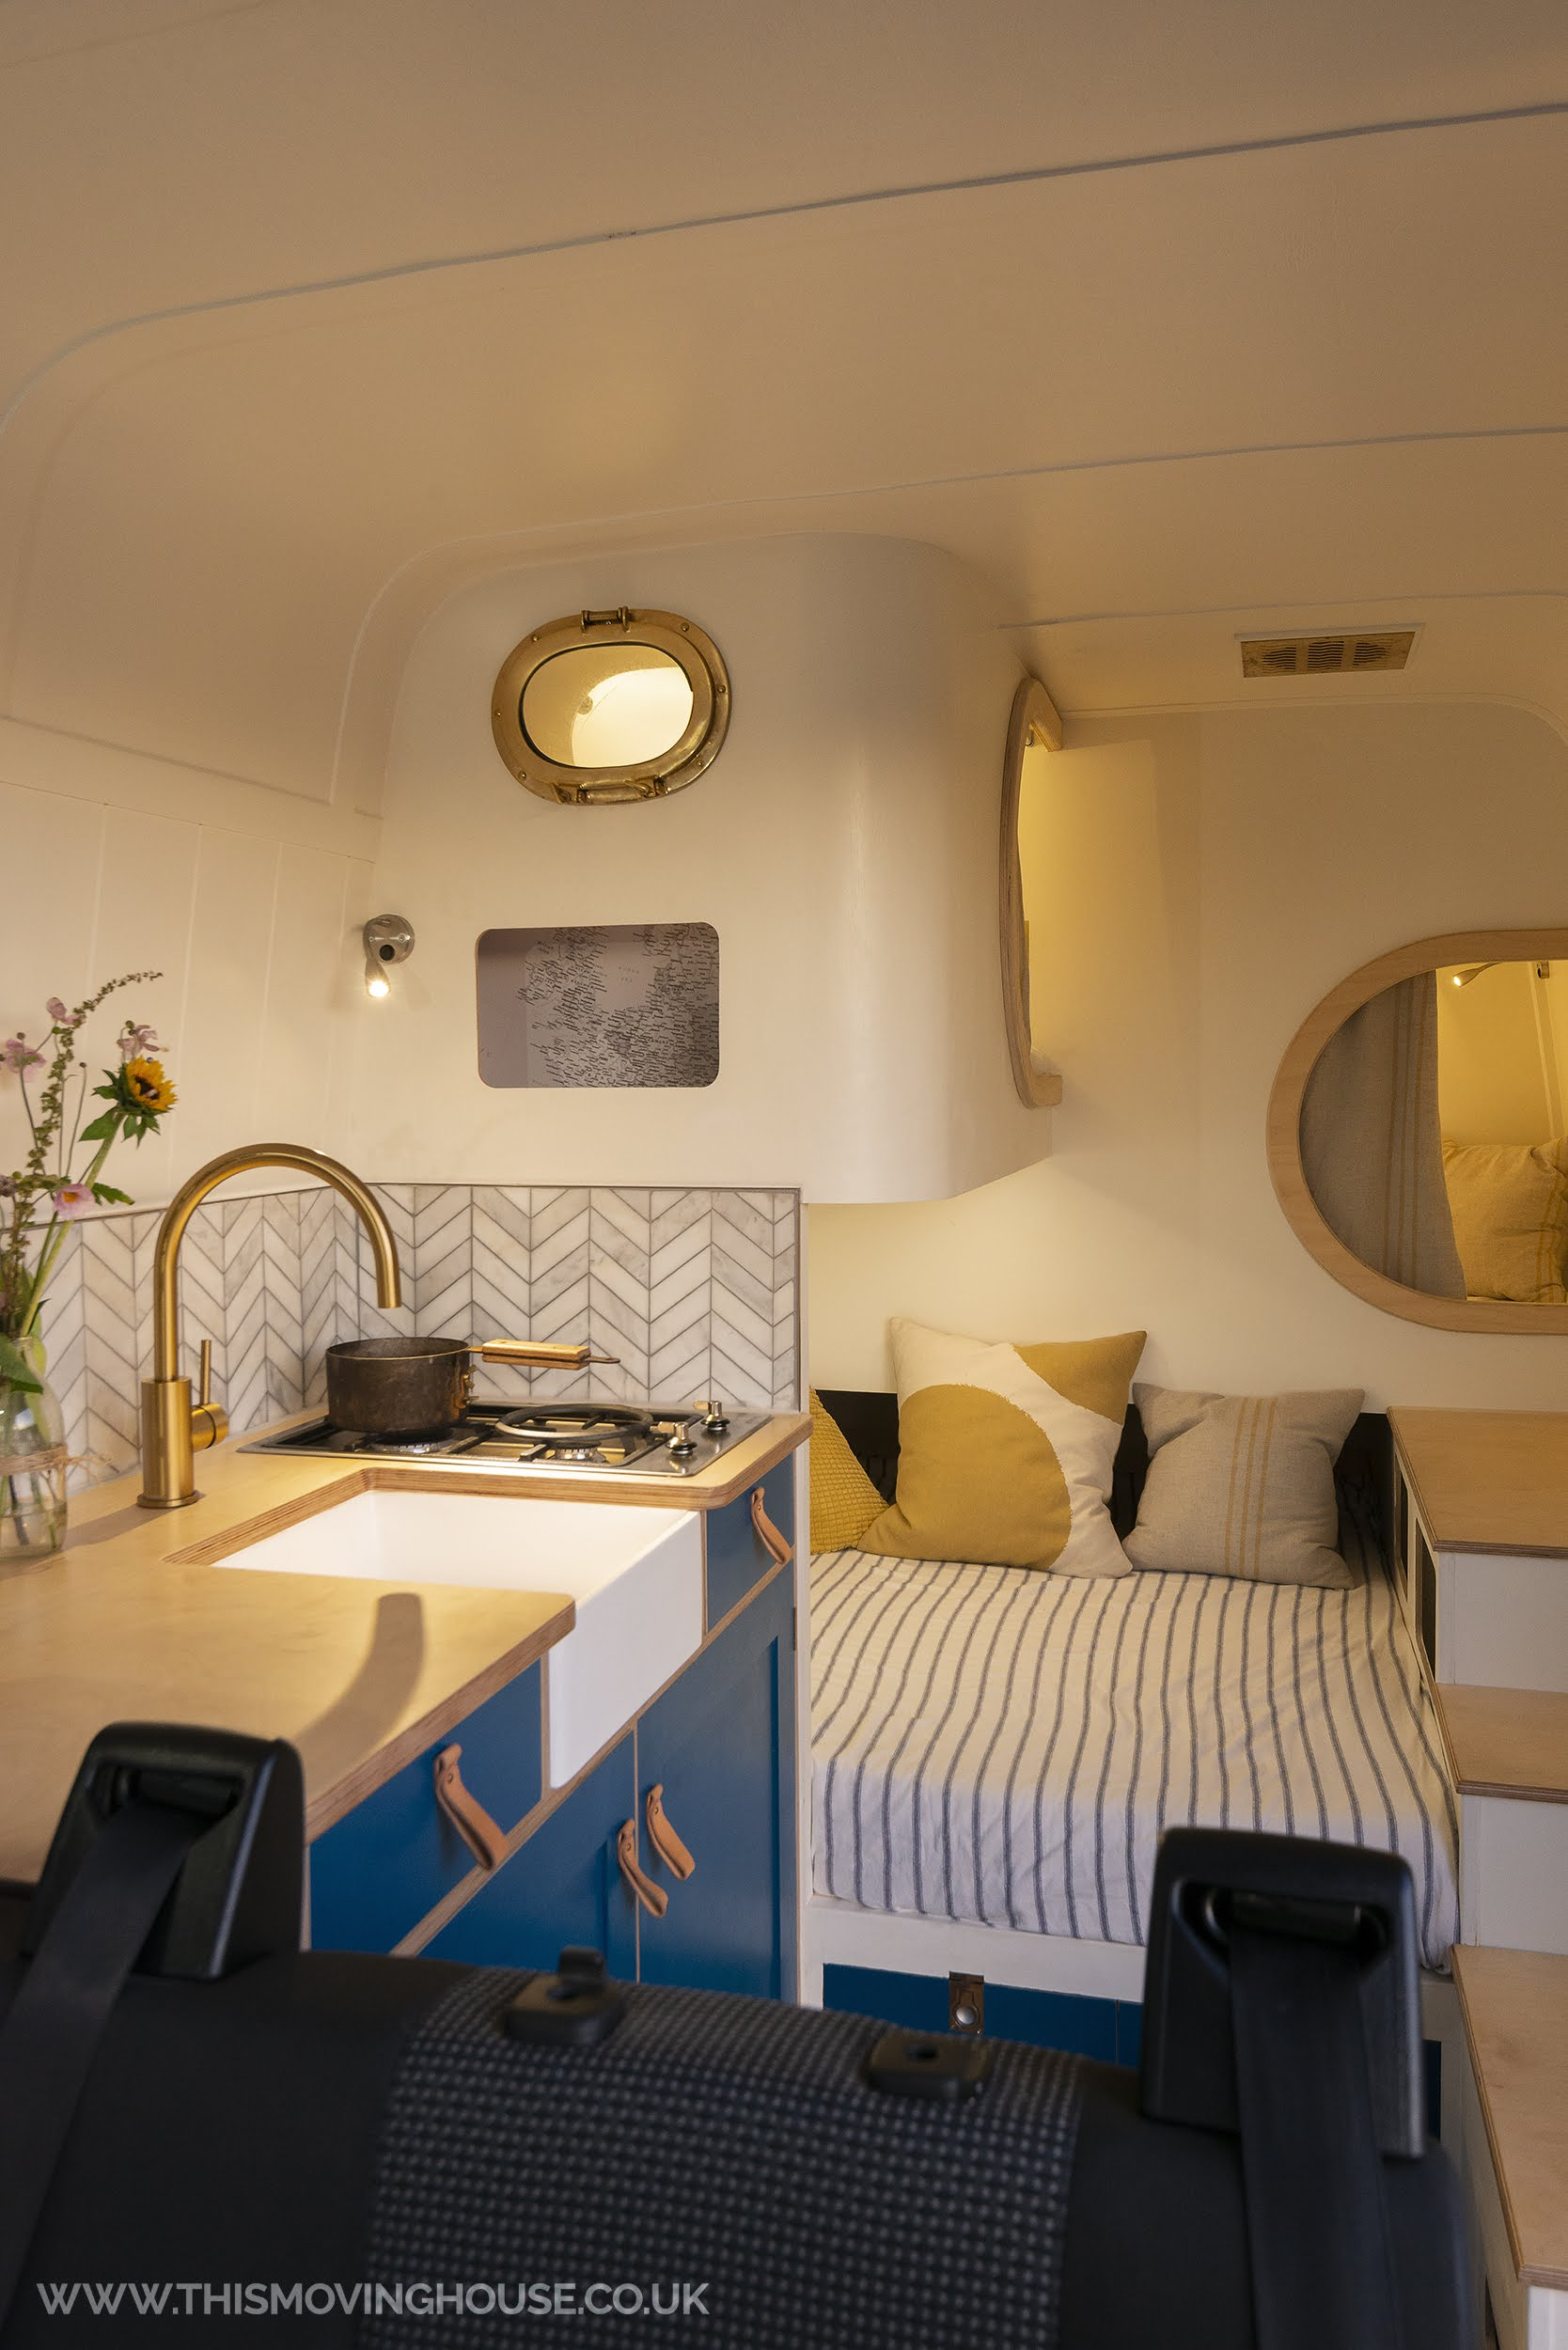 Kitchen and sleeping area in a sprinter camper van